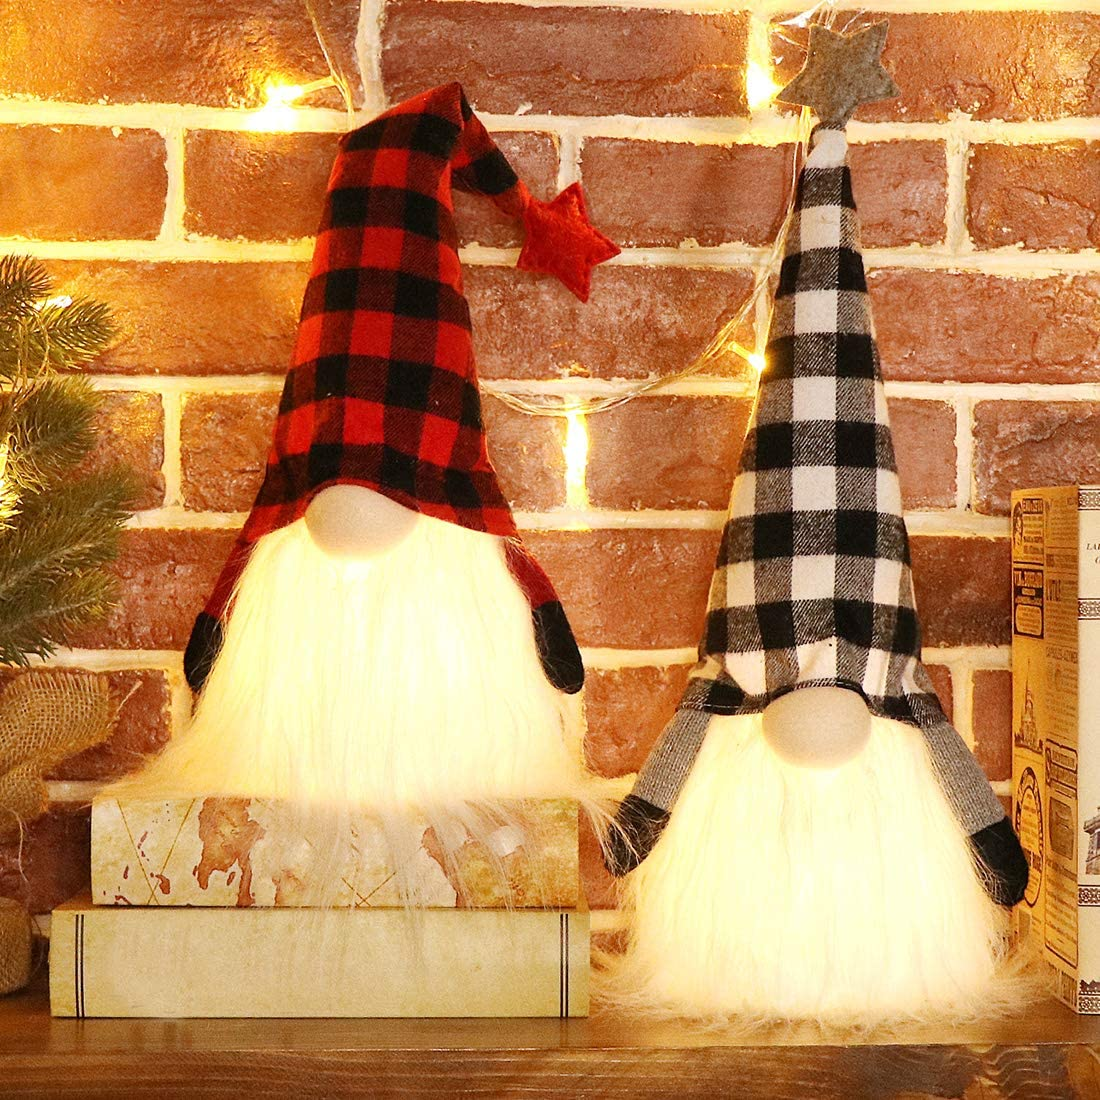 EDLDECCO Christmas Gnome with Light Timer 18 Inches Set of 2 Plaid Buffalo Check Nisse Figurine Plush Swedish Nordic Tomte Scandinavian Elf X'Mas Holiday Party Home Decor Ornaments (Red & Black)